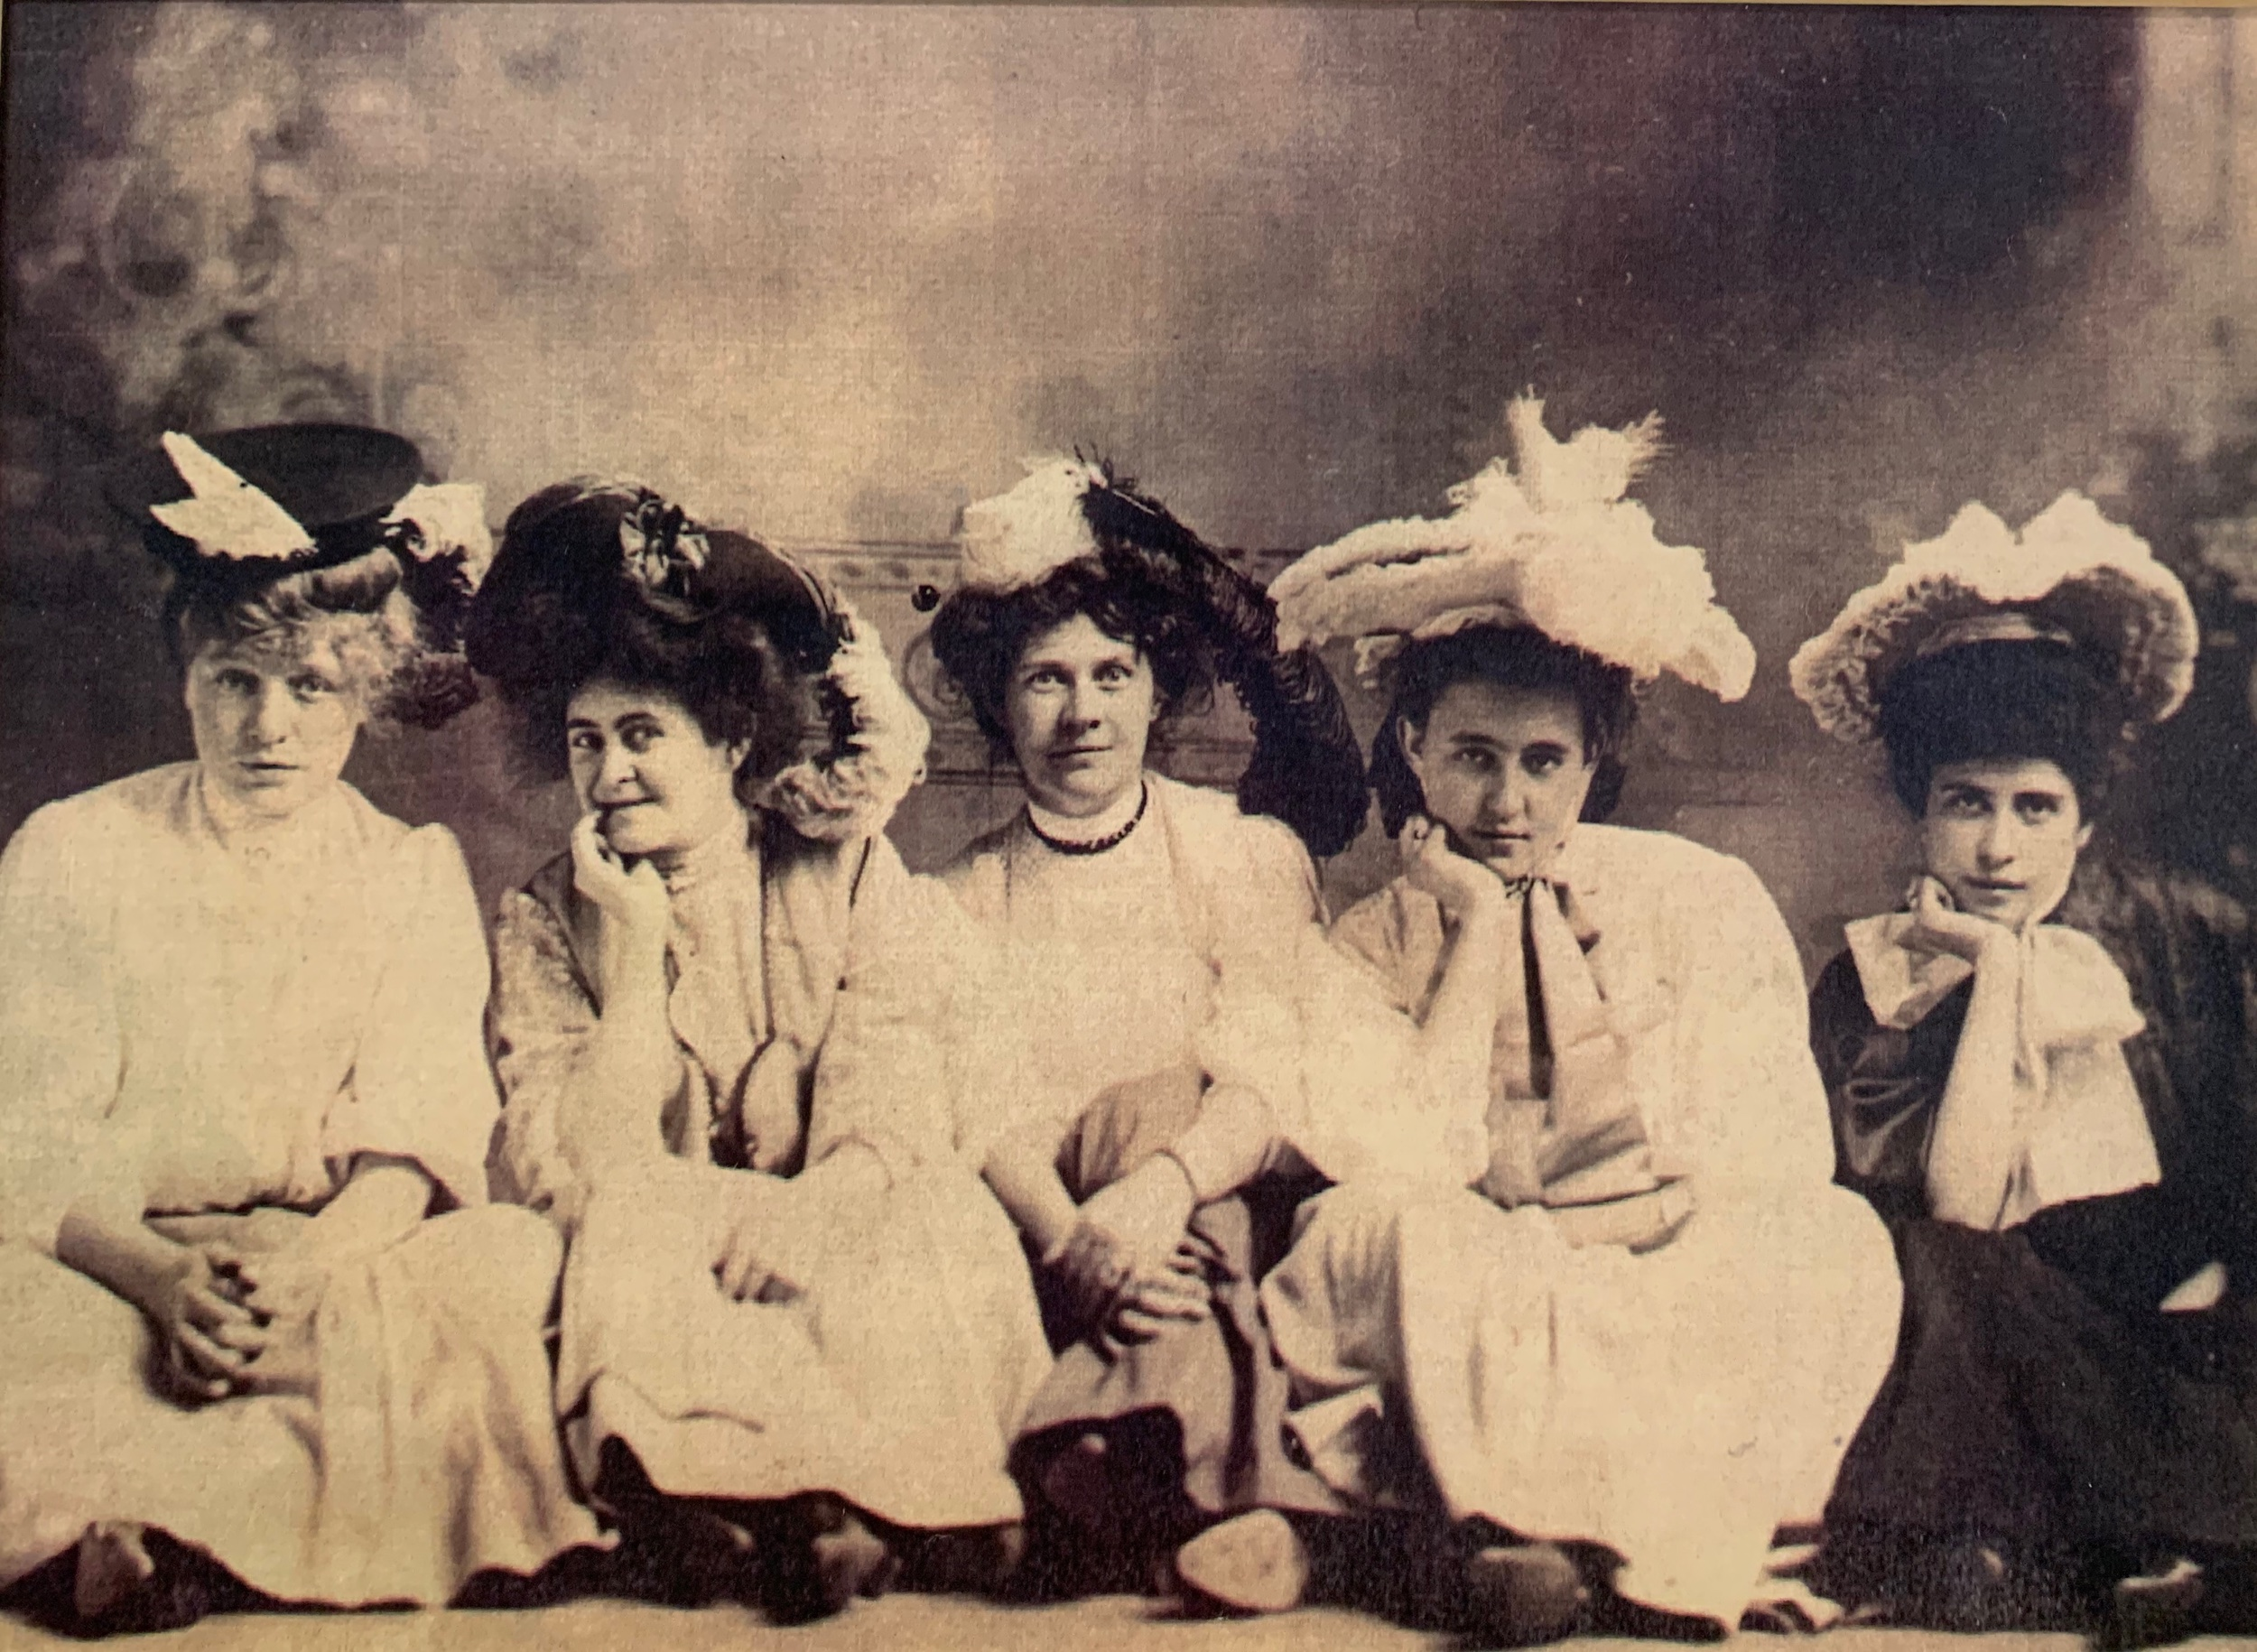 Millinery business partners with Grandmother, Elizabeth Fleming (second from right)